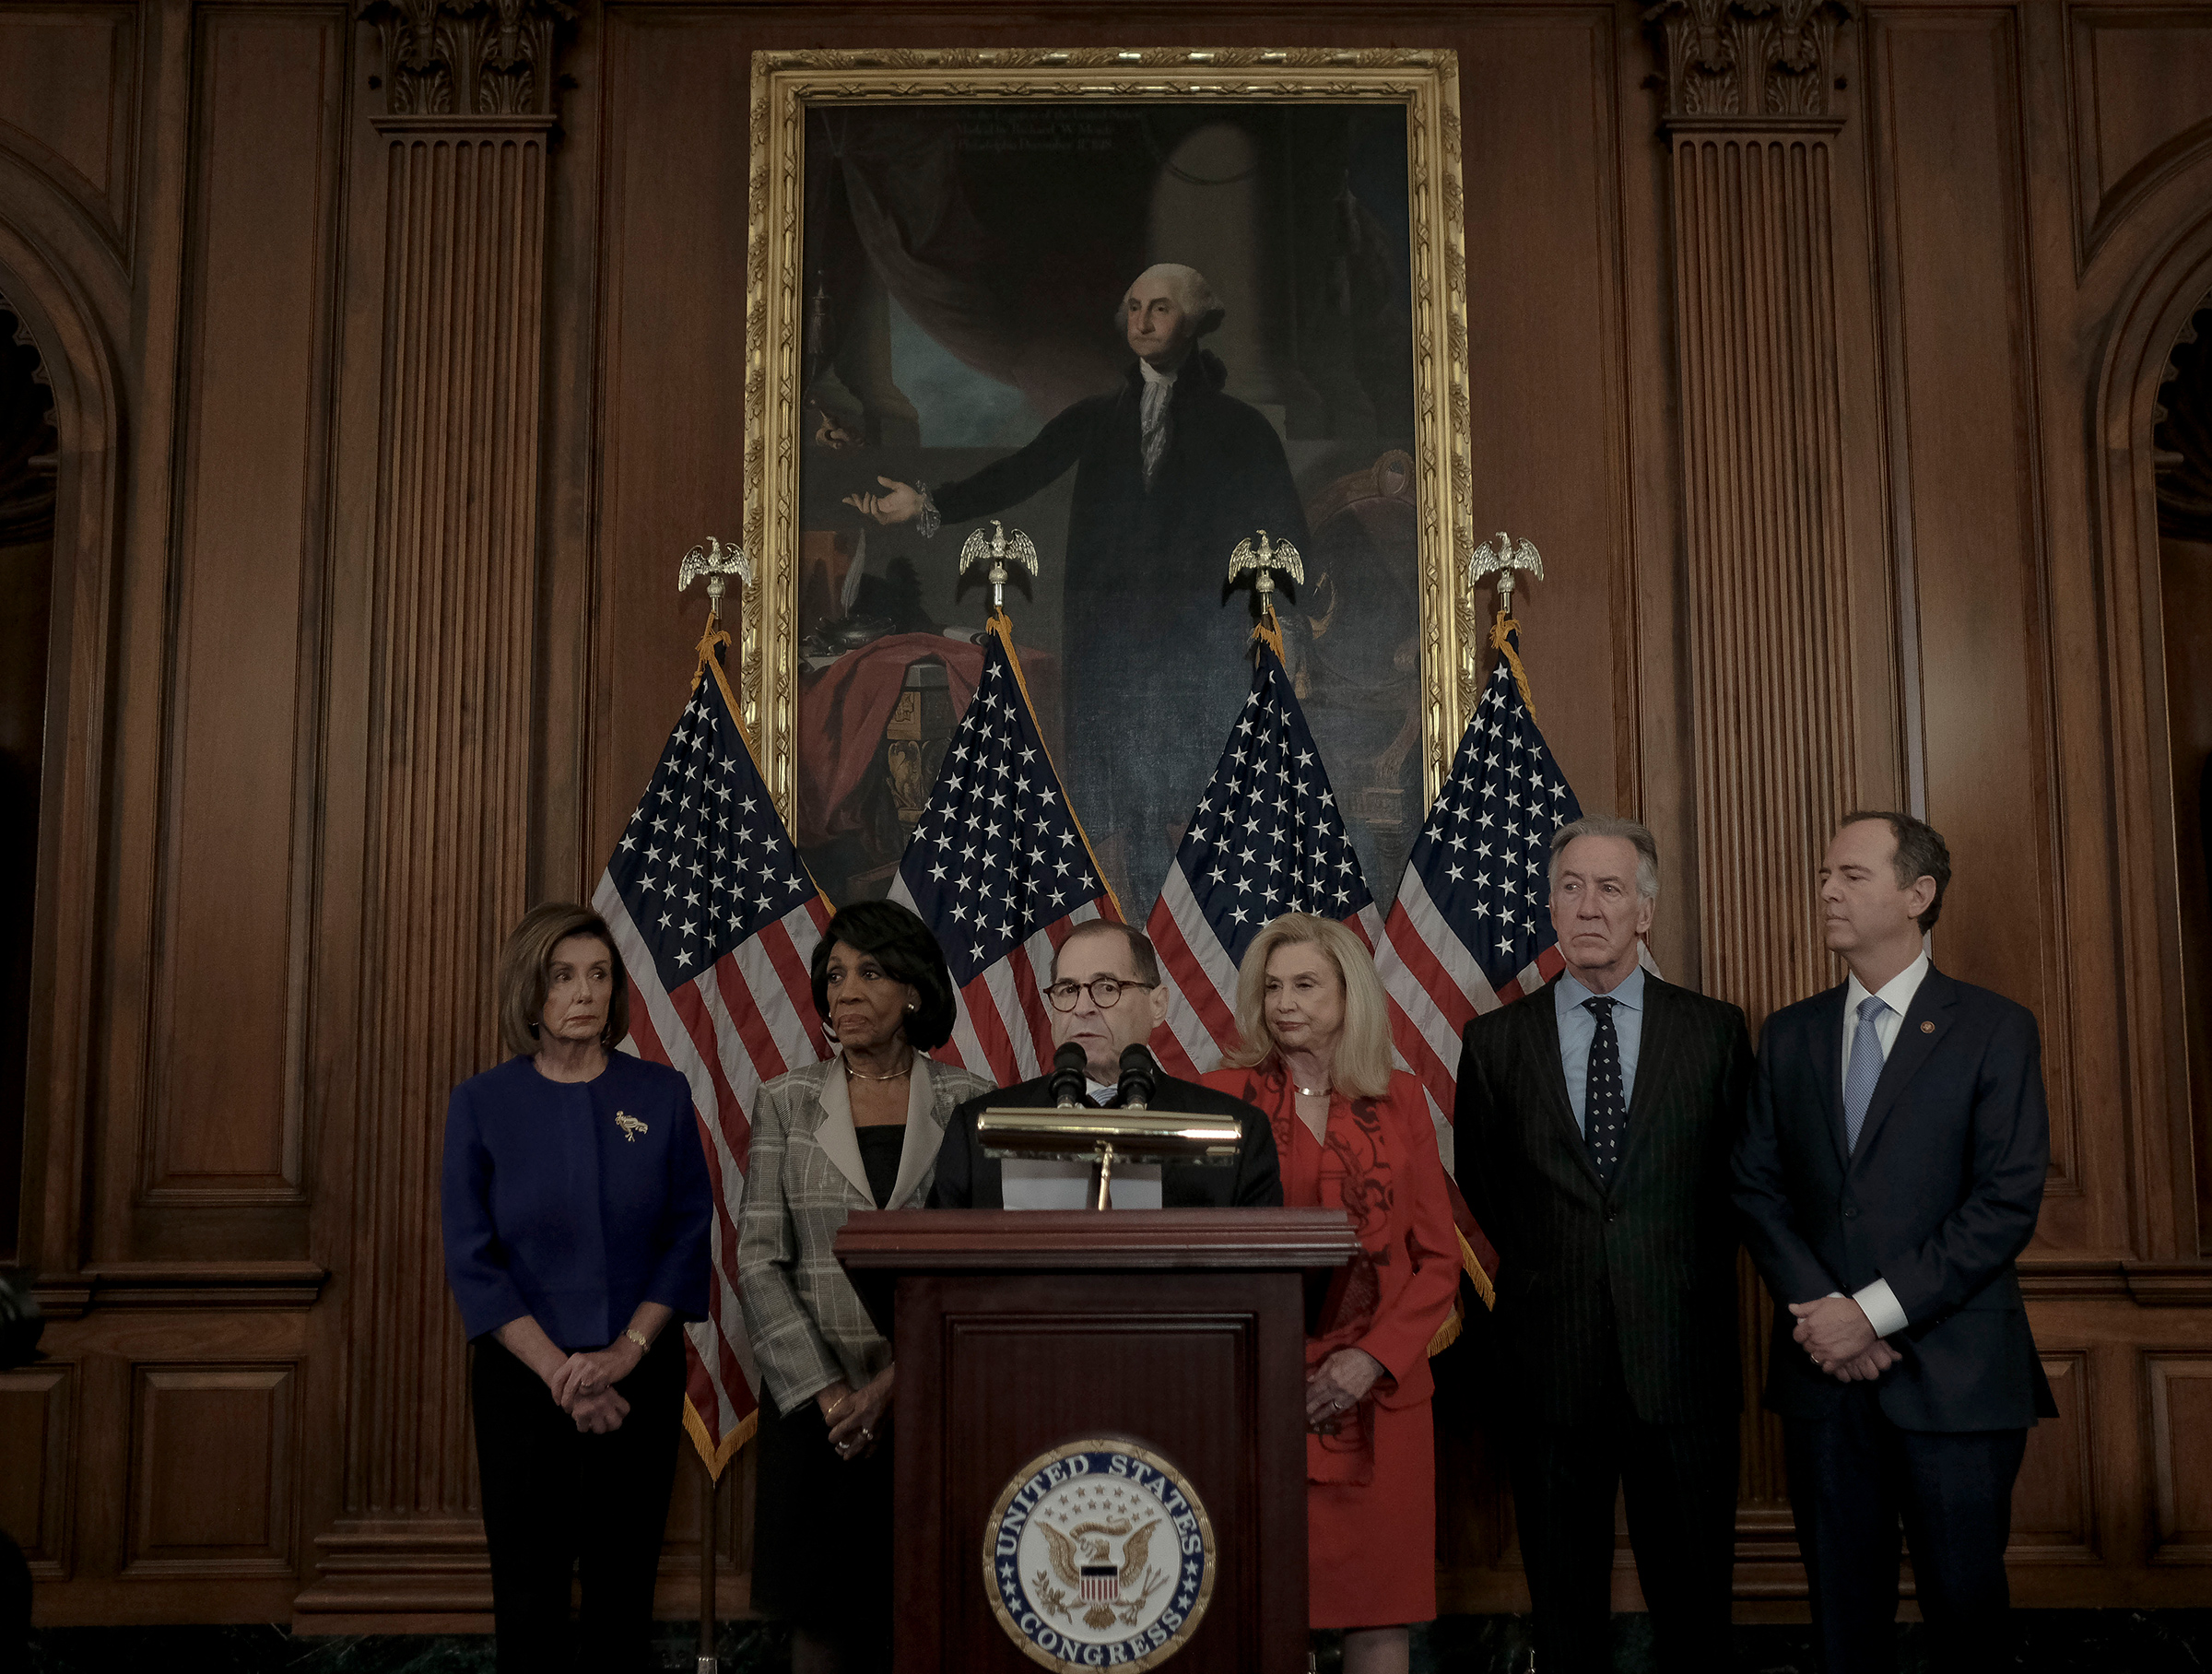 Rep. Jerry Nadler (D-NY), chairman of the Judiciary Committee, along with Speaker Nancy Pelosi and other Democratic committee heads announce the formal articles of impeachment against President Trump at the Capitol on Dec. 10, 2019.